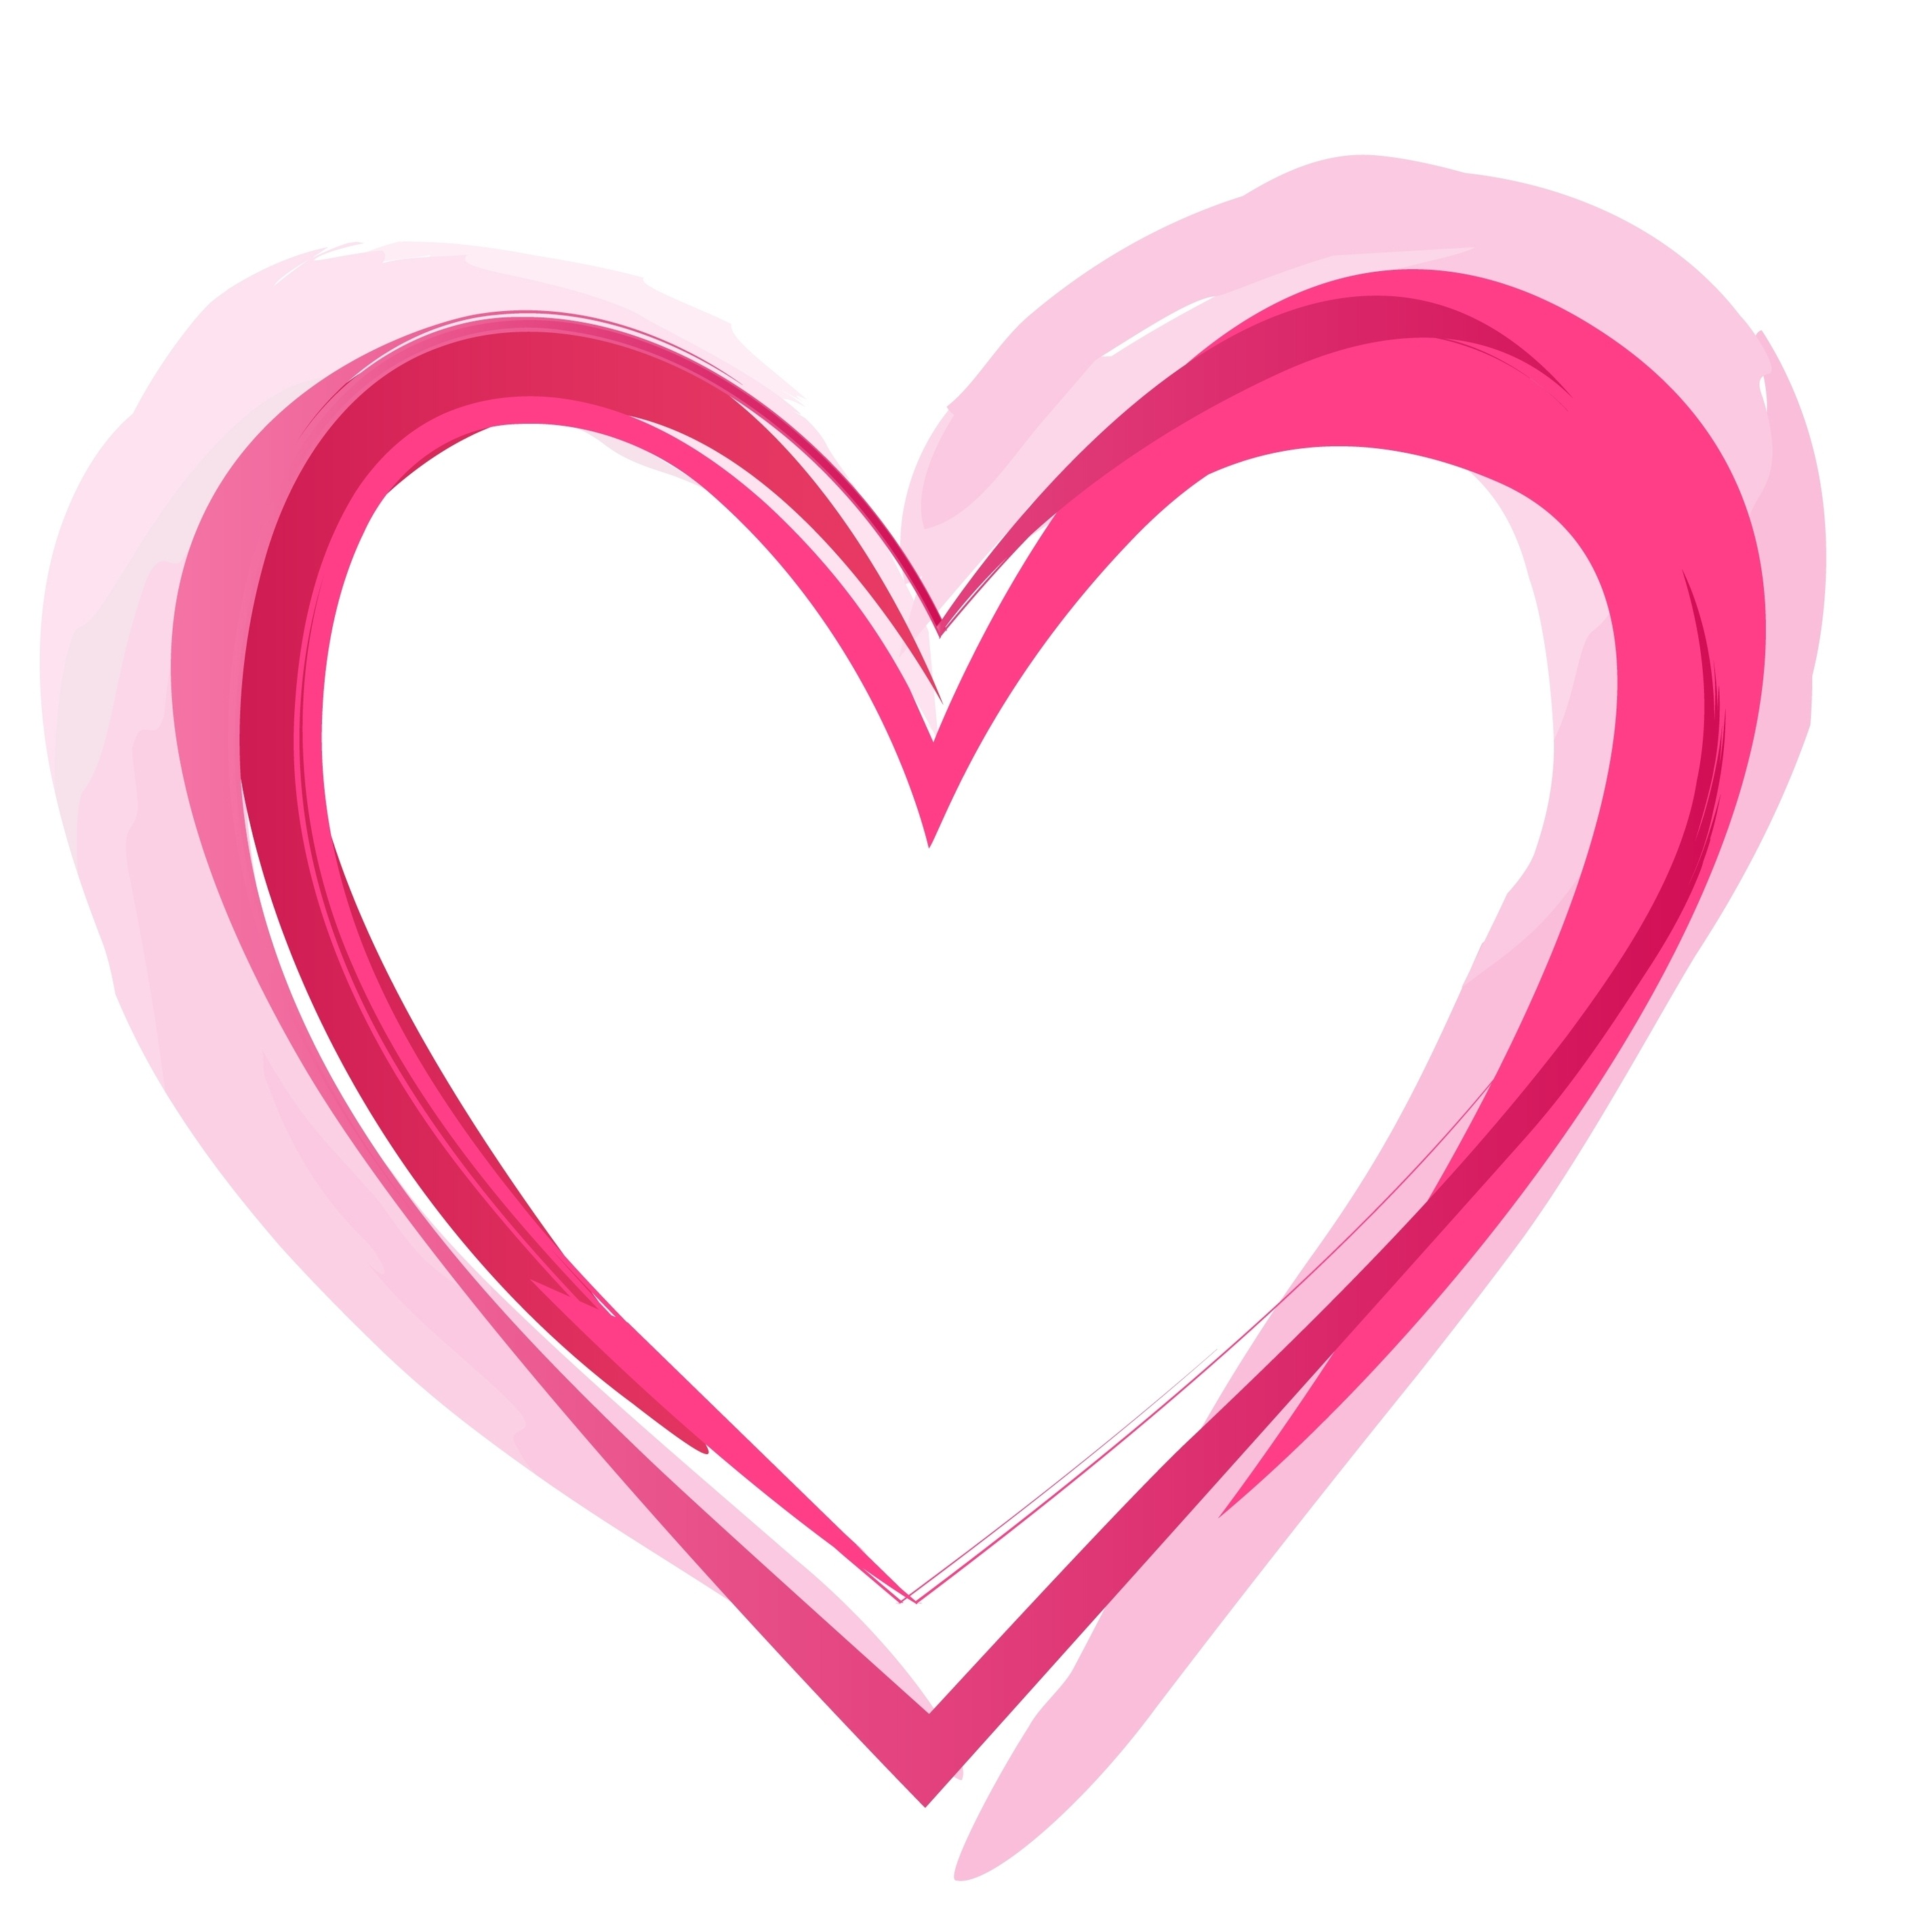 Heart Outline Images, Stock Photos & Vectors | Shutterstock |Pink Heart Outline Clipart